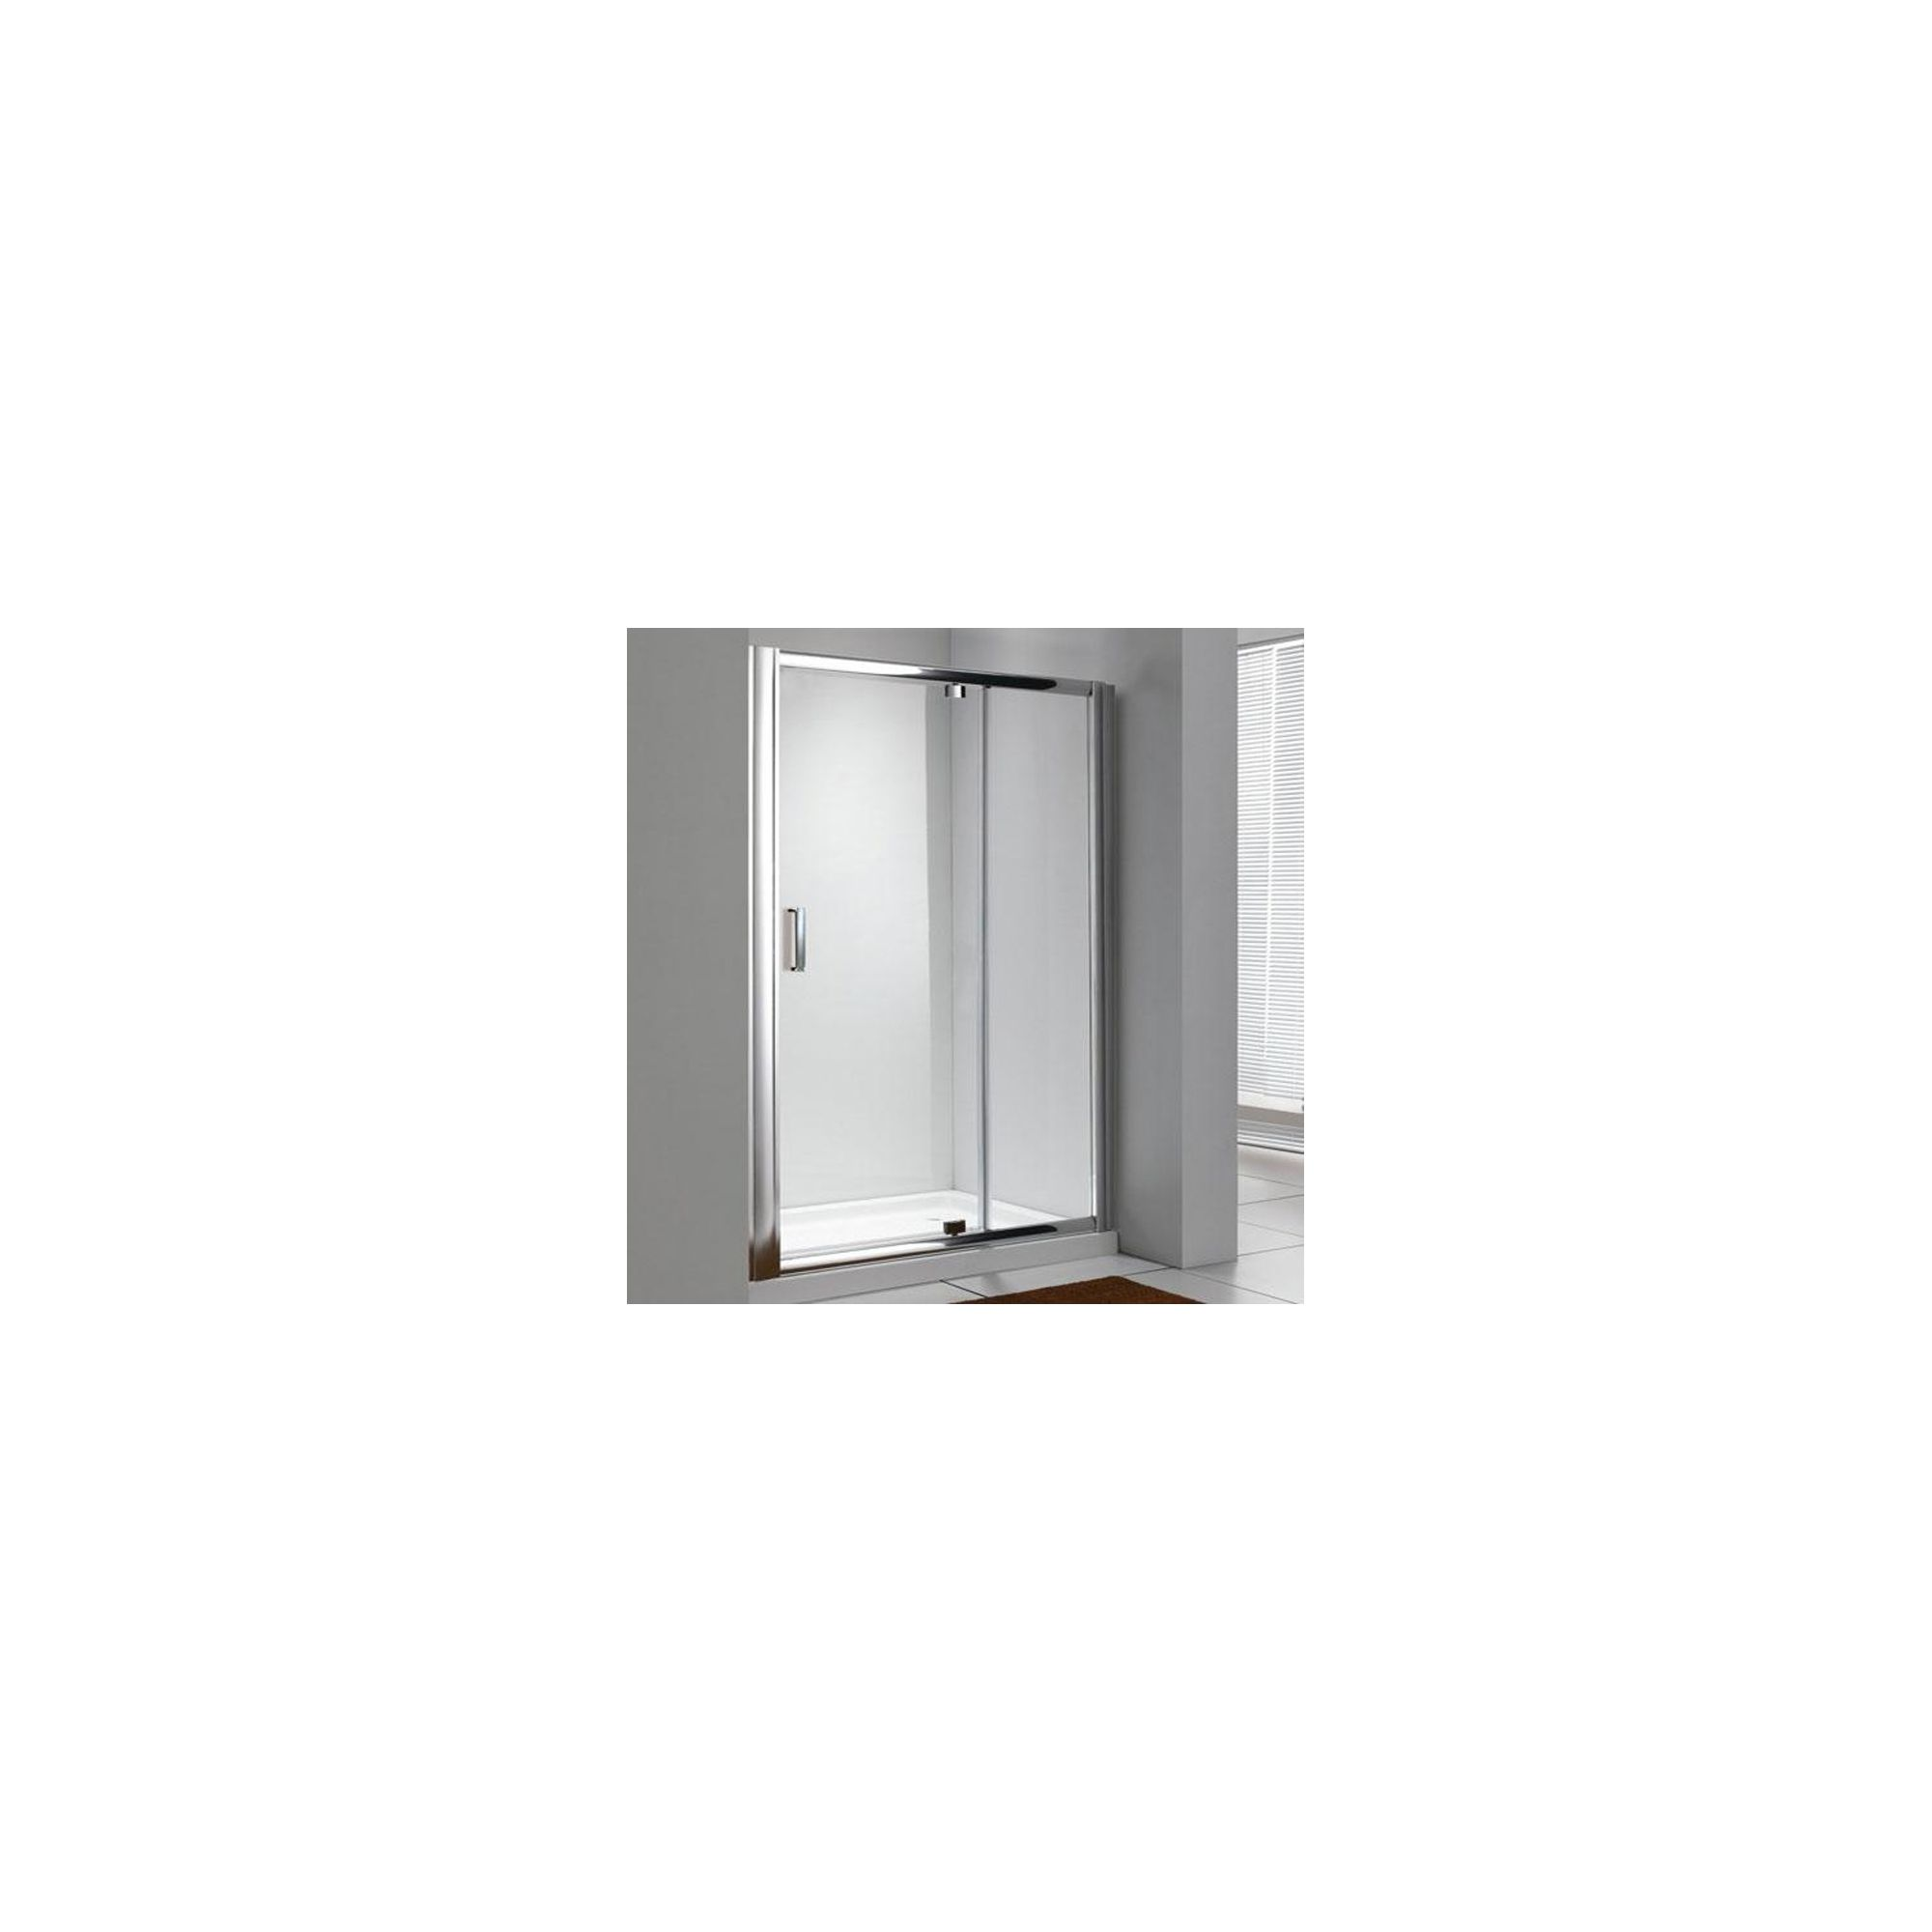 Duchy Style Pivot Shower Door, 1200mm Wide, 6mm Glass at Tesco Direct